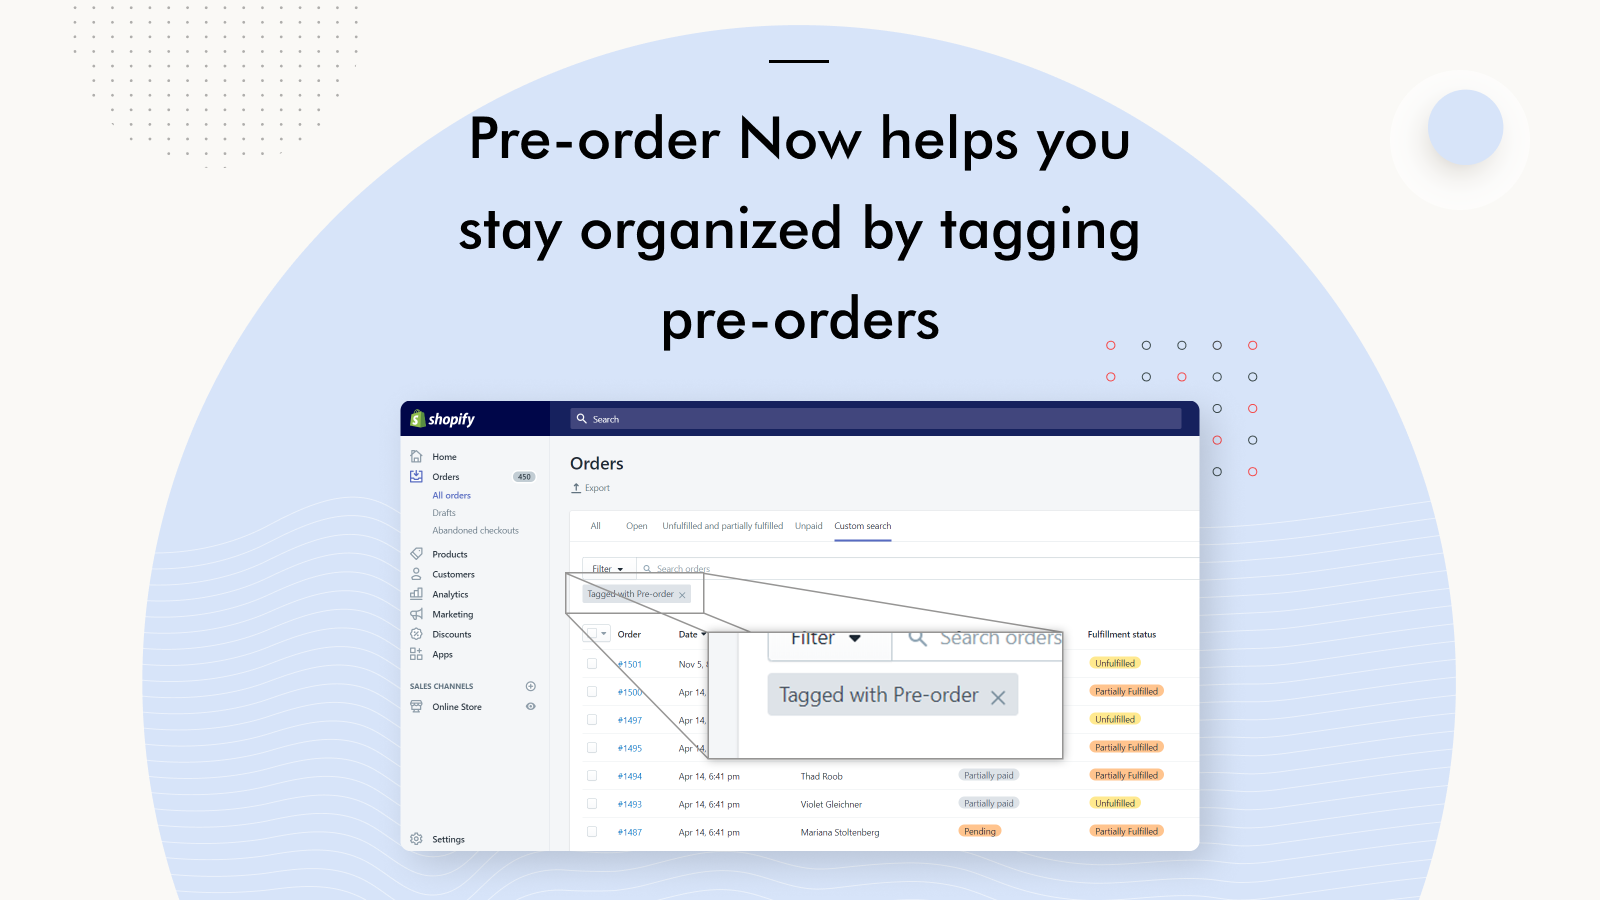 Pre-order Now helps you stay organized by tagging pre-orders